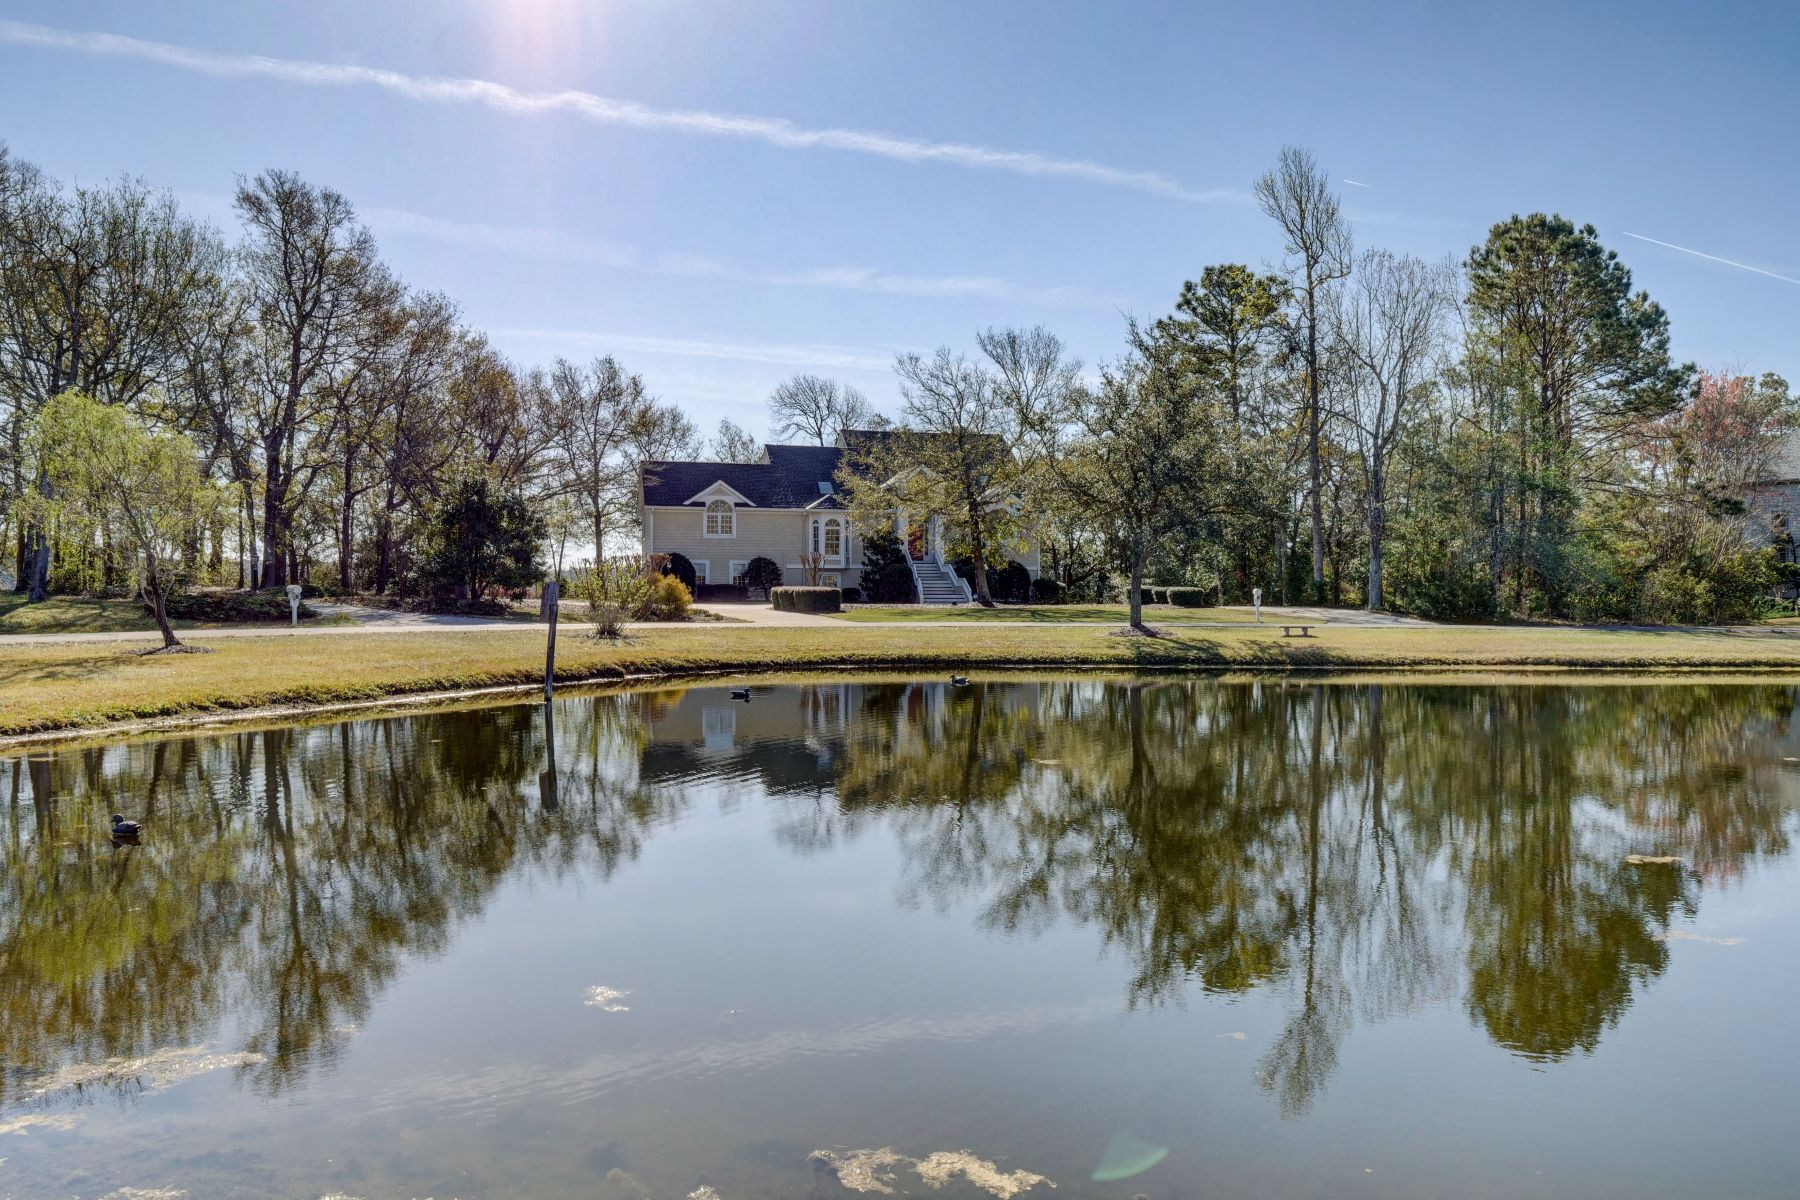 Single Family Home for Active at Beautiful Deep Waterfront Home in Private Community 62 Myrtle Point Circle Supply, North Carolina 28462 United States